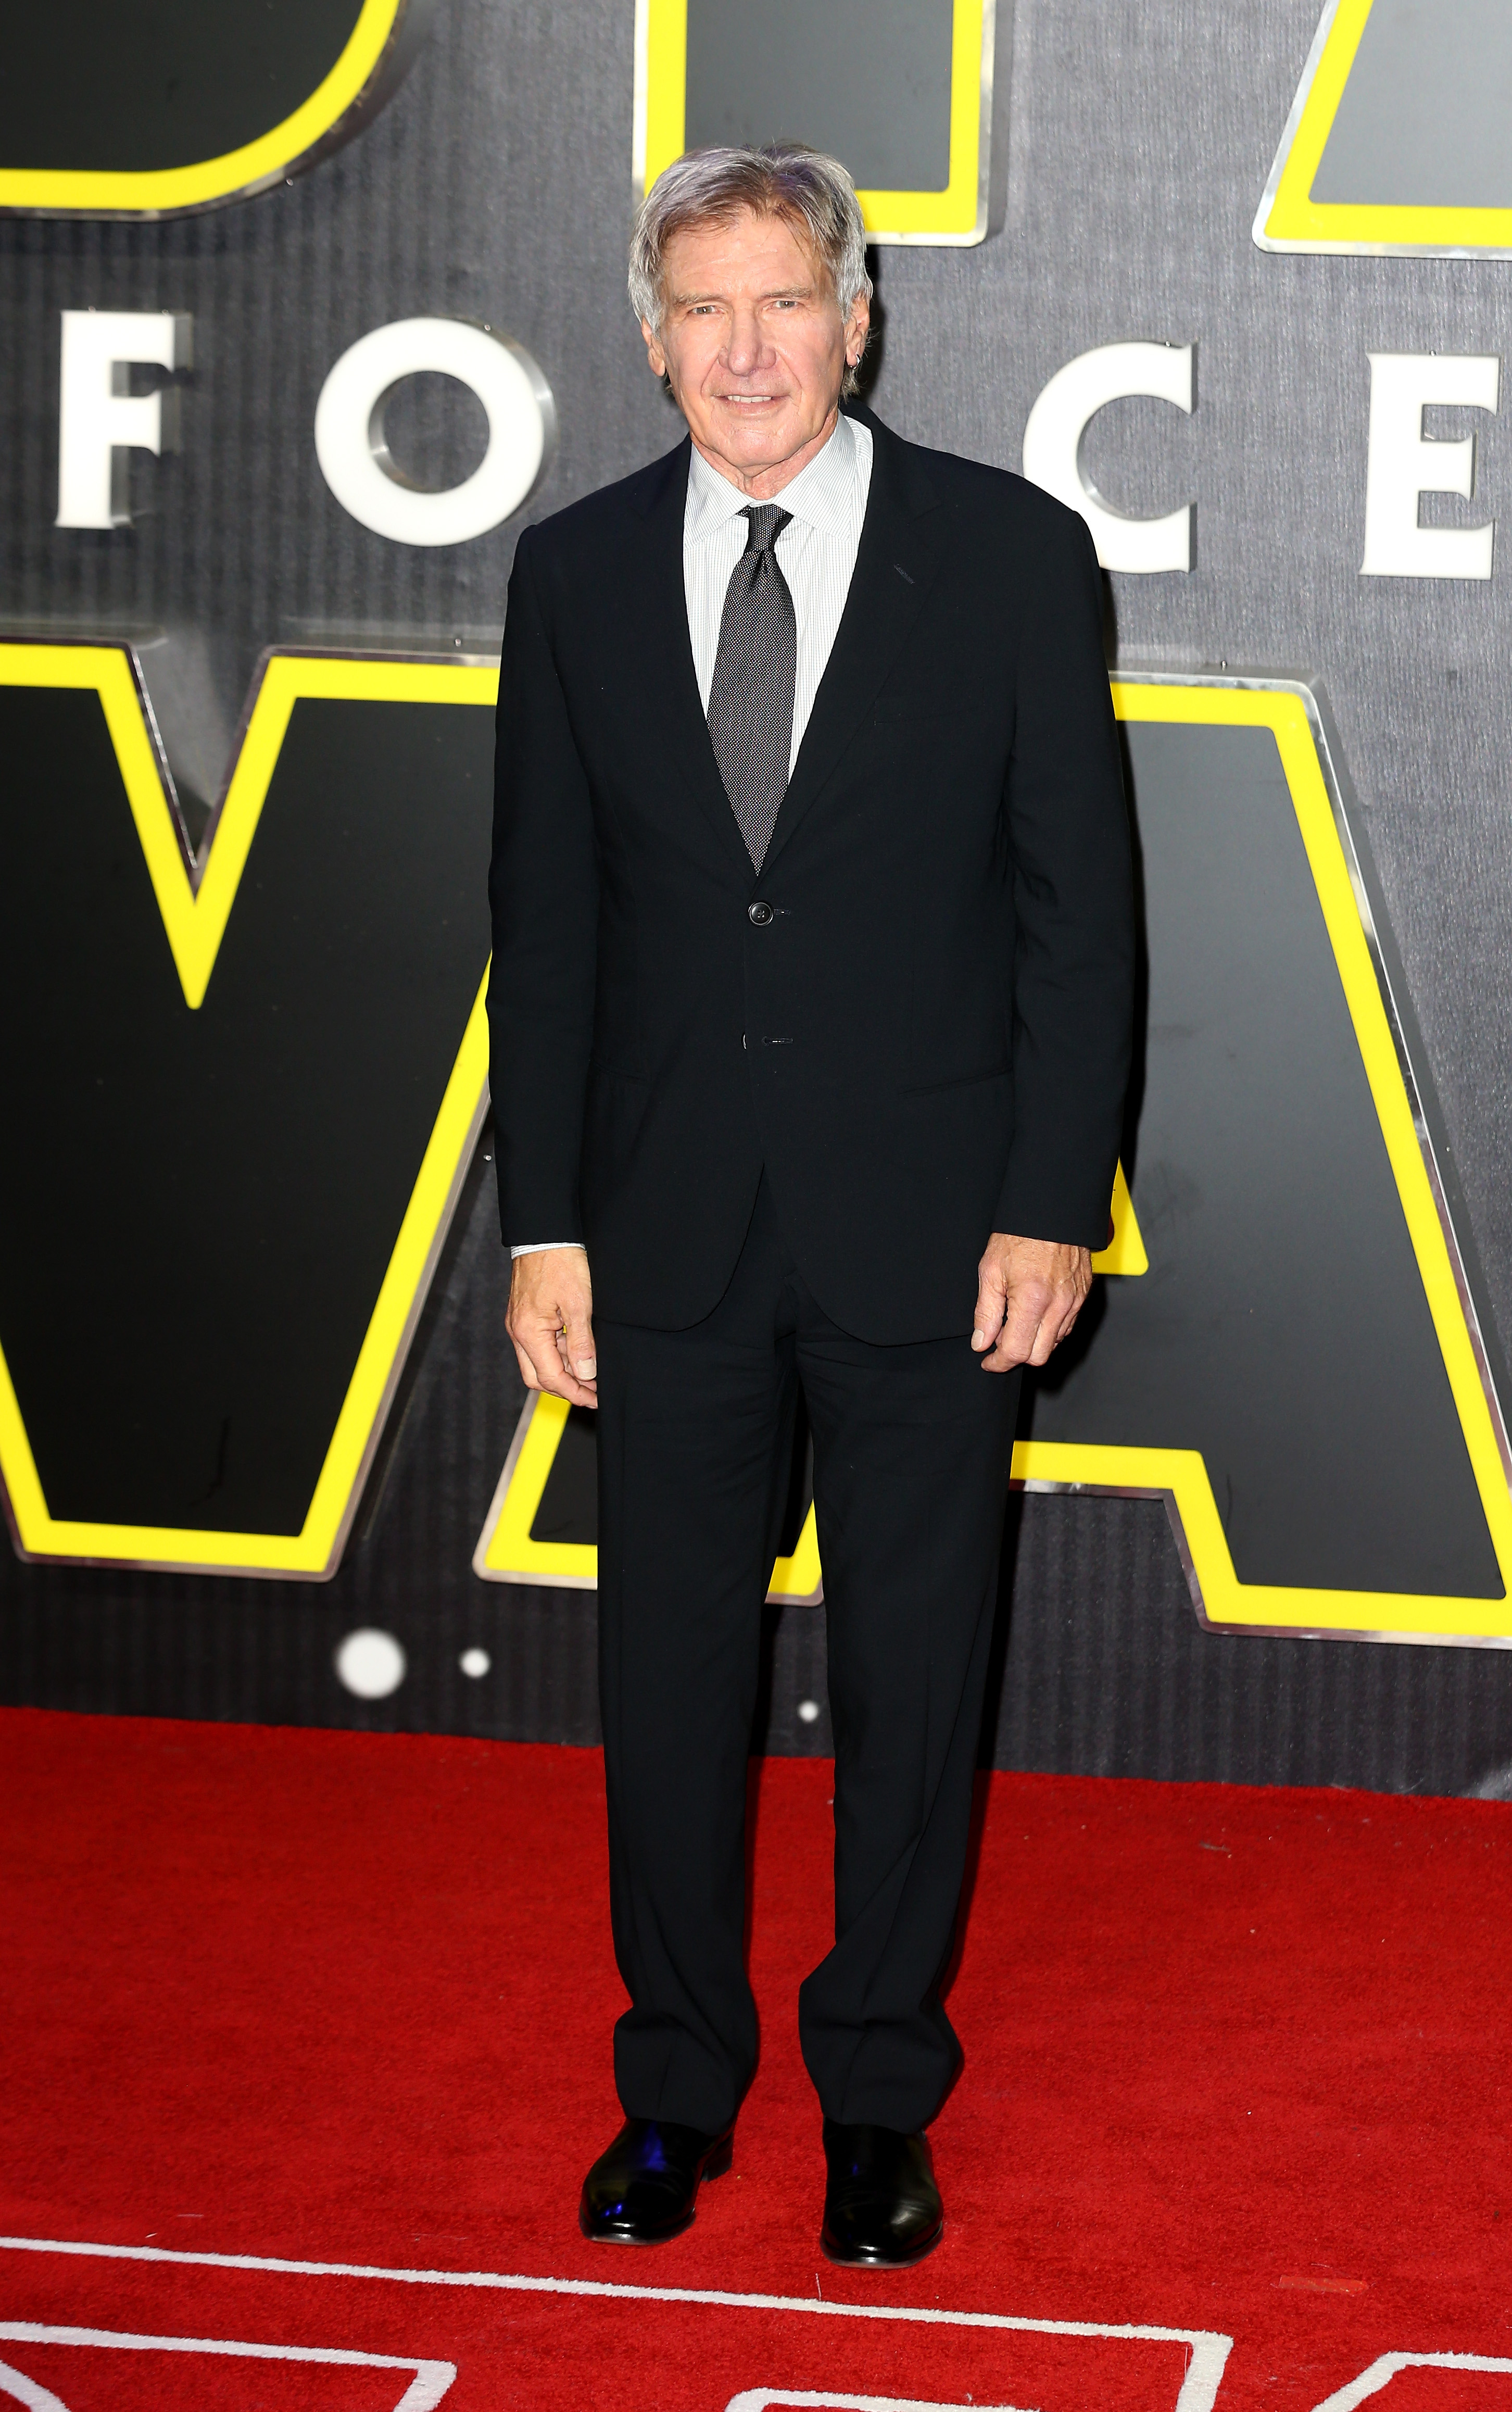 Top 10 best (and worst) Star Wars: The Force Awakens red carpet looks [GALLERY]